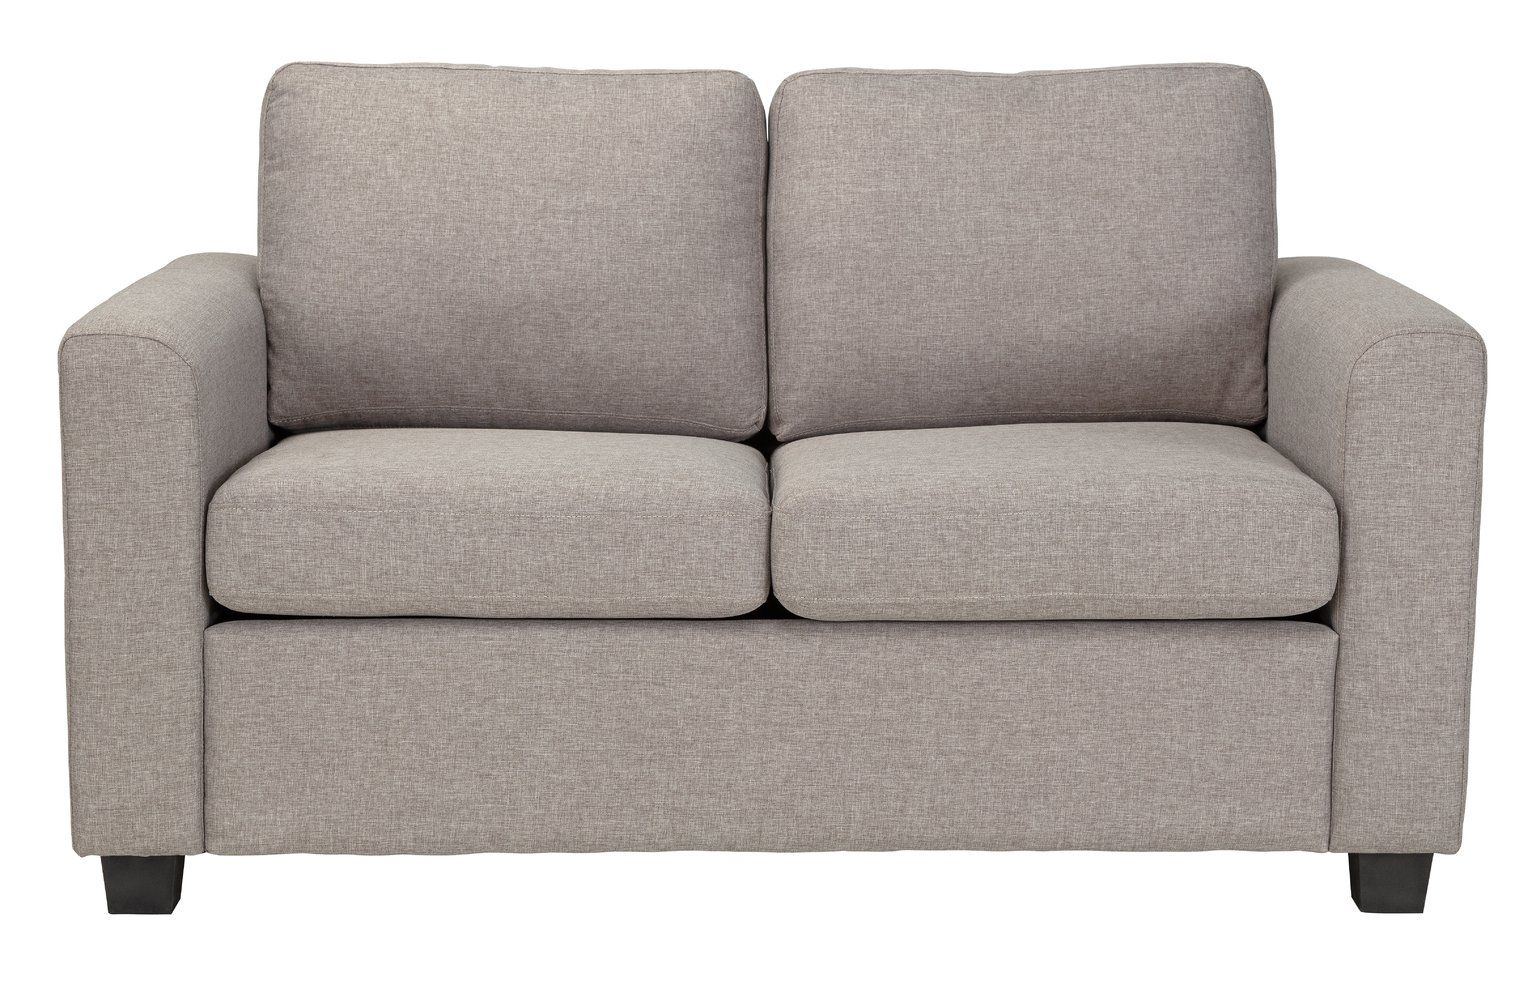 Buy Argos Home Apartment 2 Seater Fabric Sofa Bed Light Grey